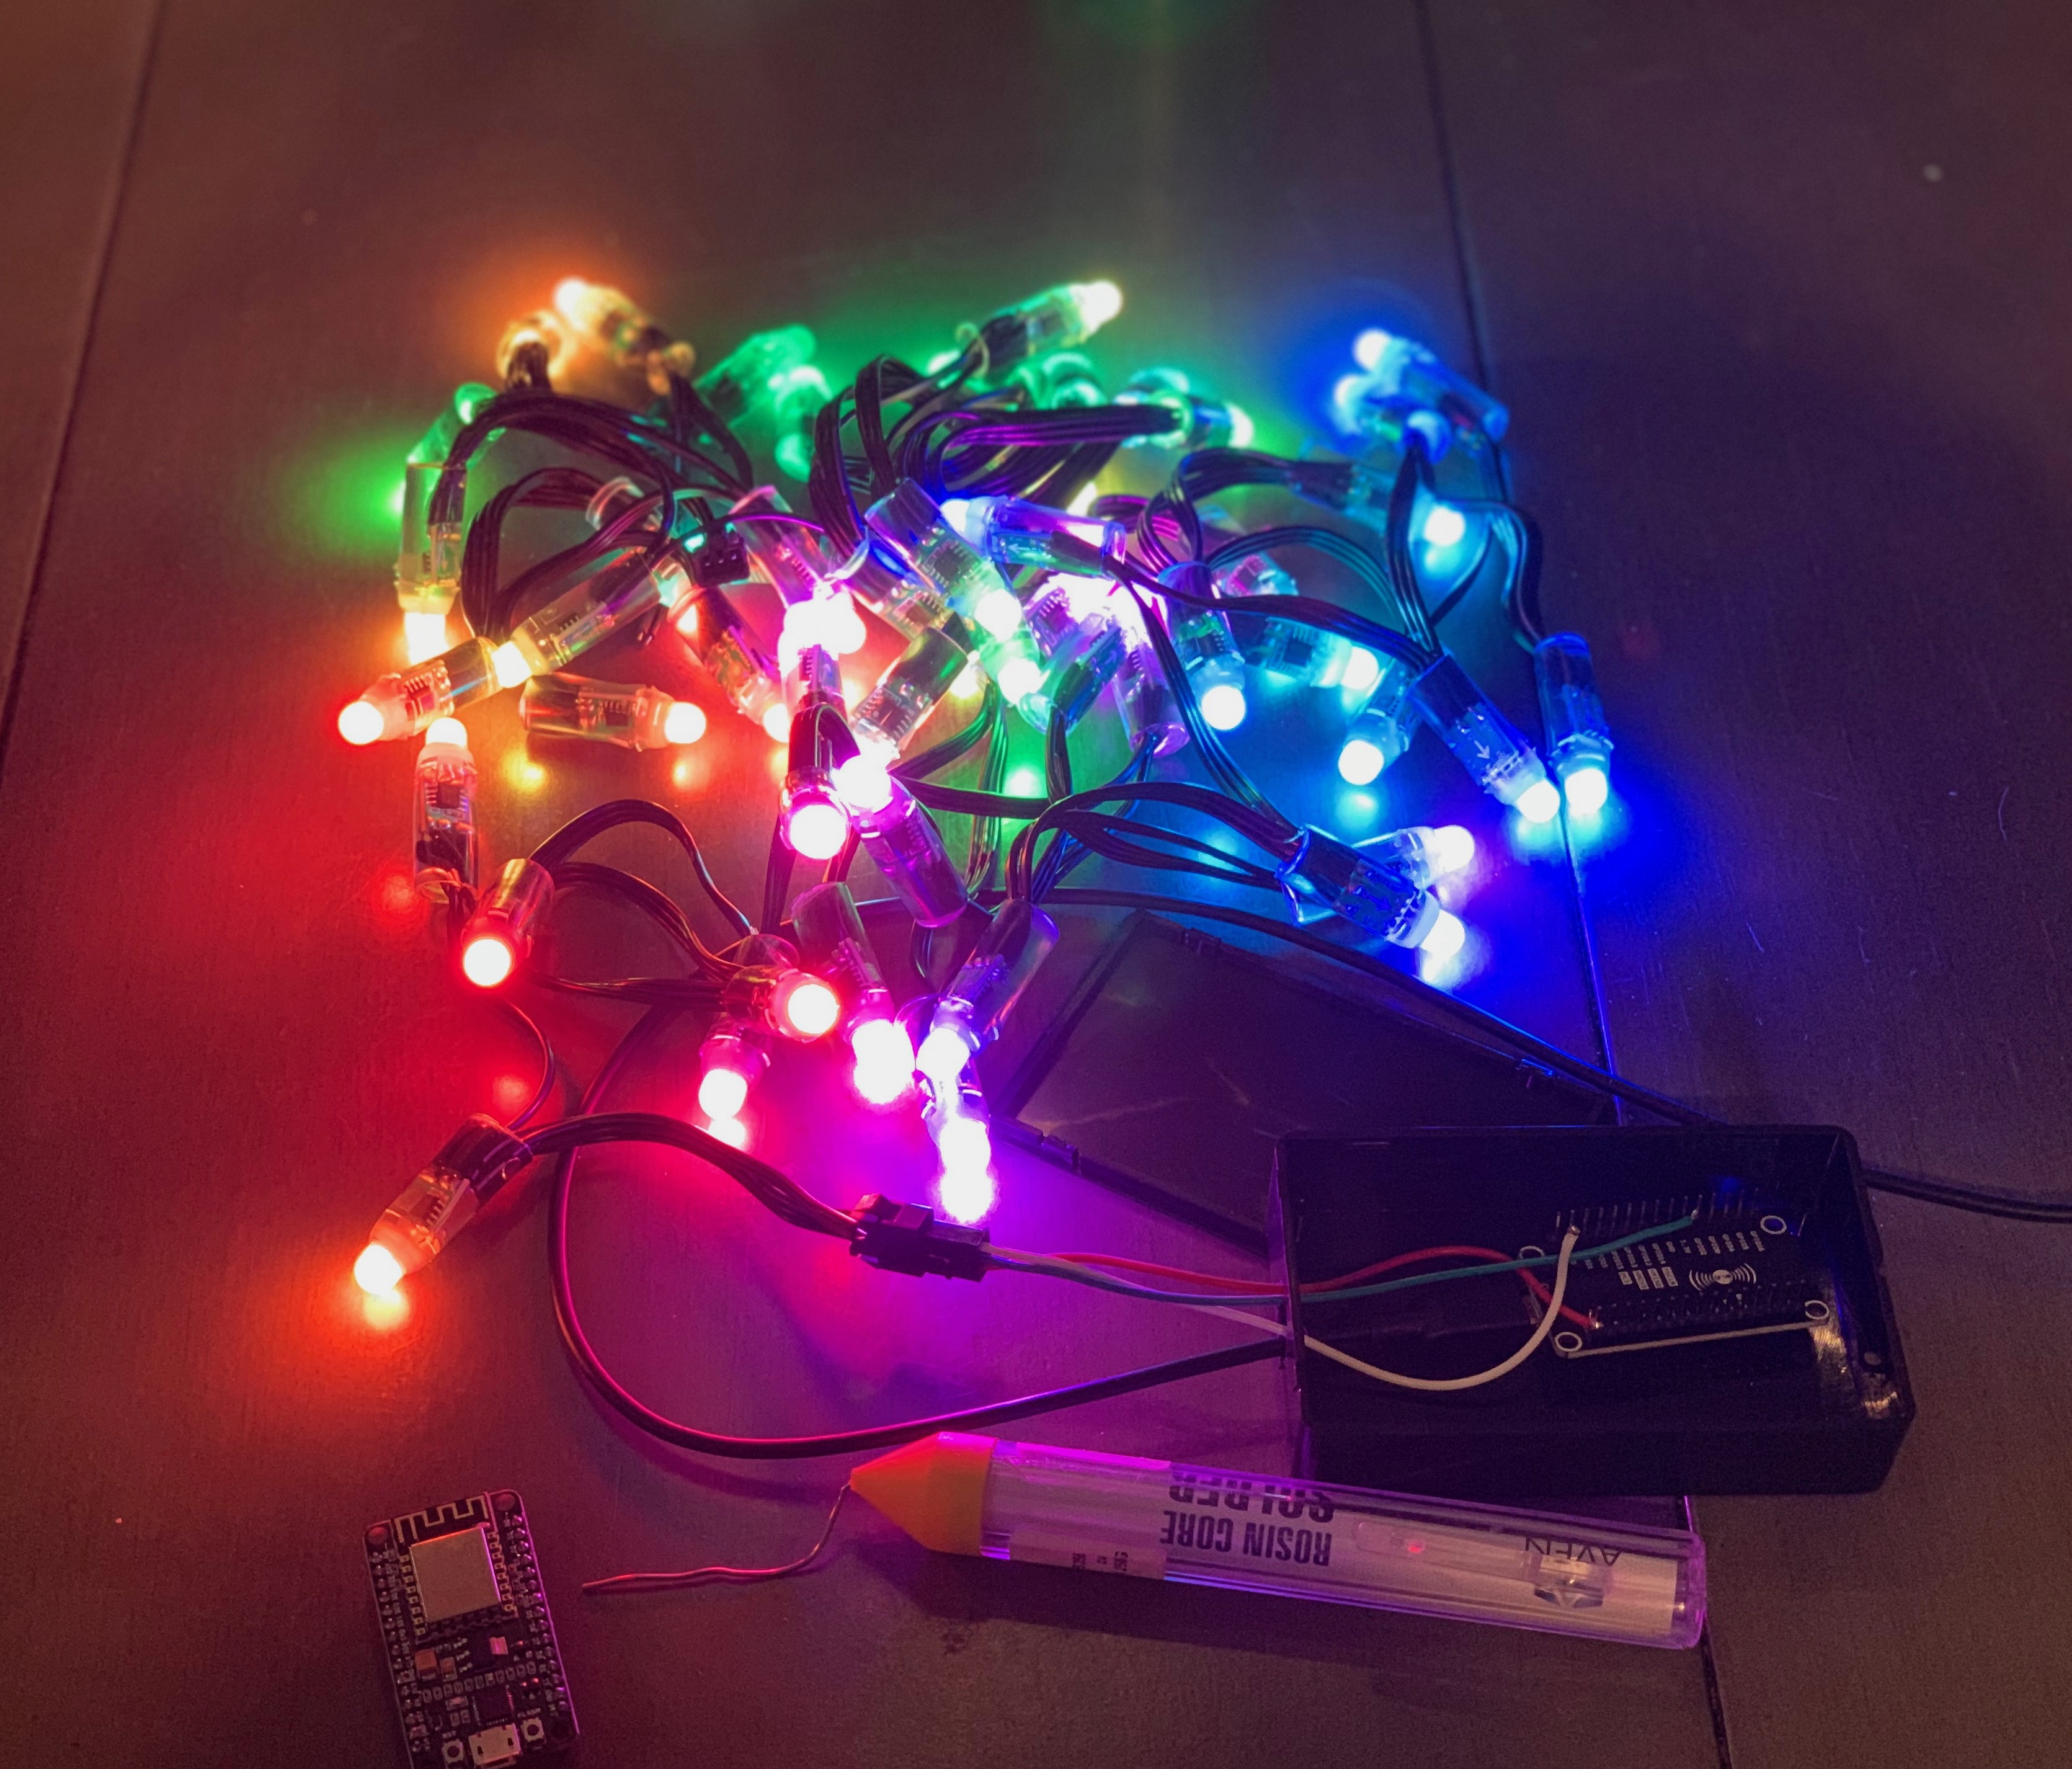 Testing WLED and WS2811 LEDs